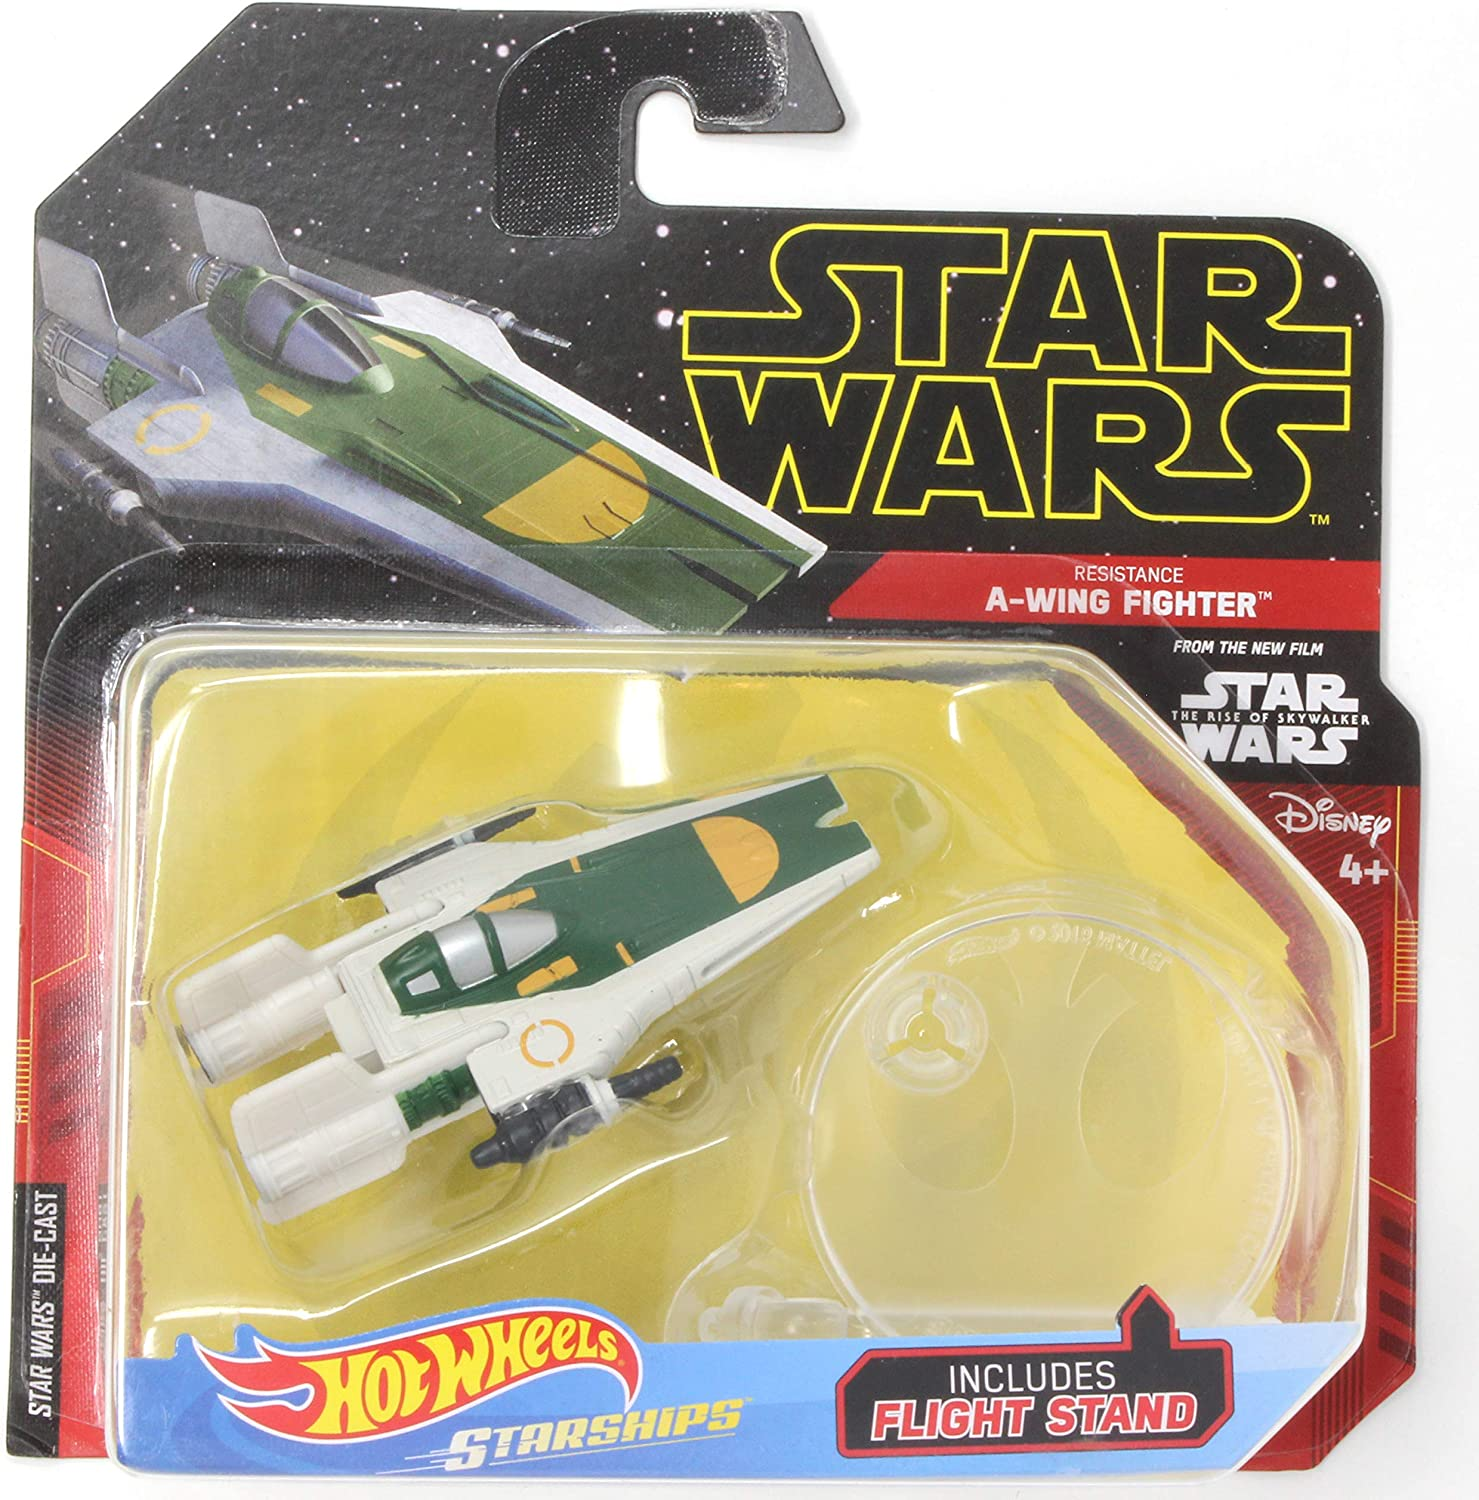 Star Wars Rebels Hot Wheels A Wing Fighter With Flight Stand